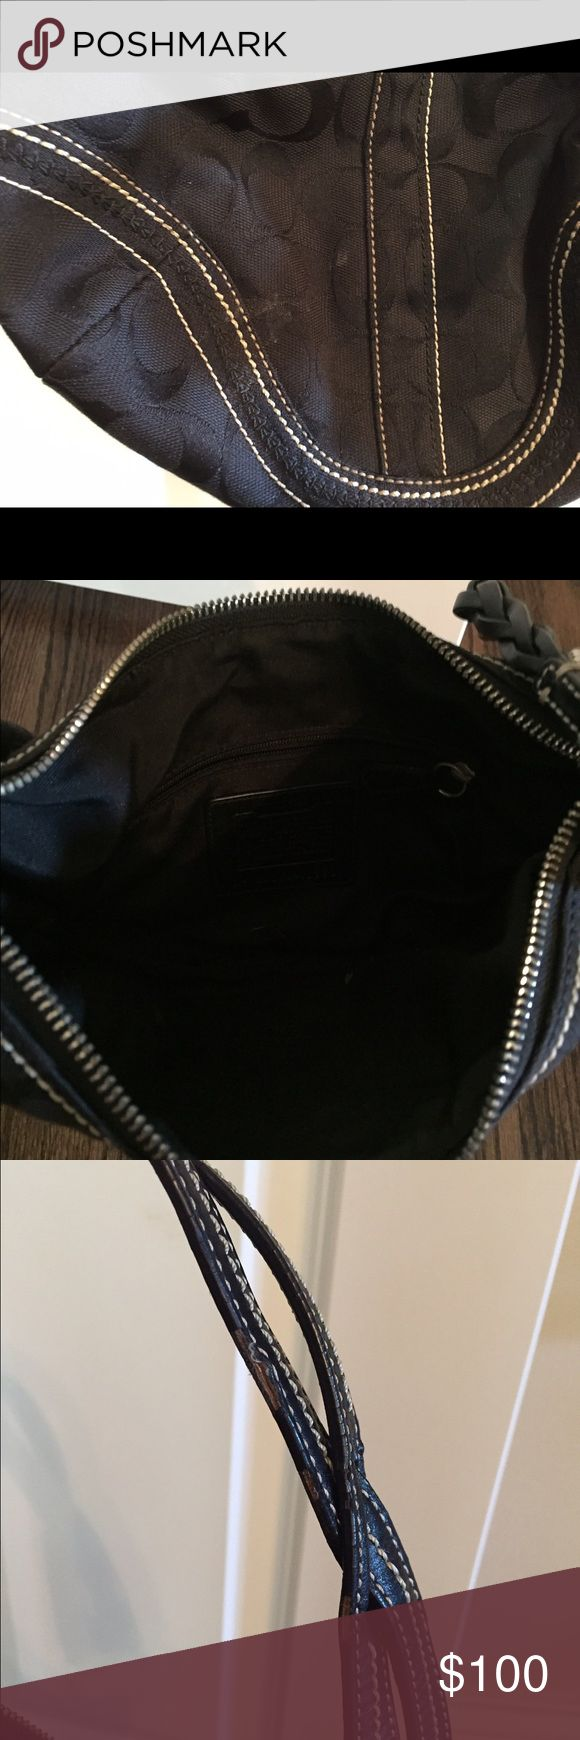 Coach purse Black on black Coach logo purse Coach Bags Shoulder Bags